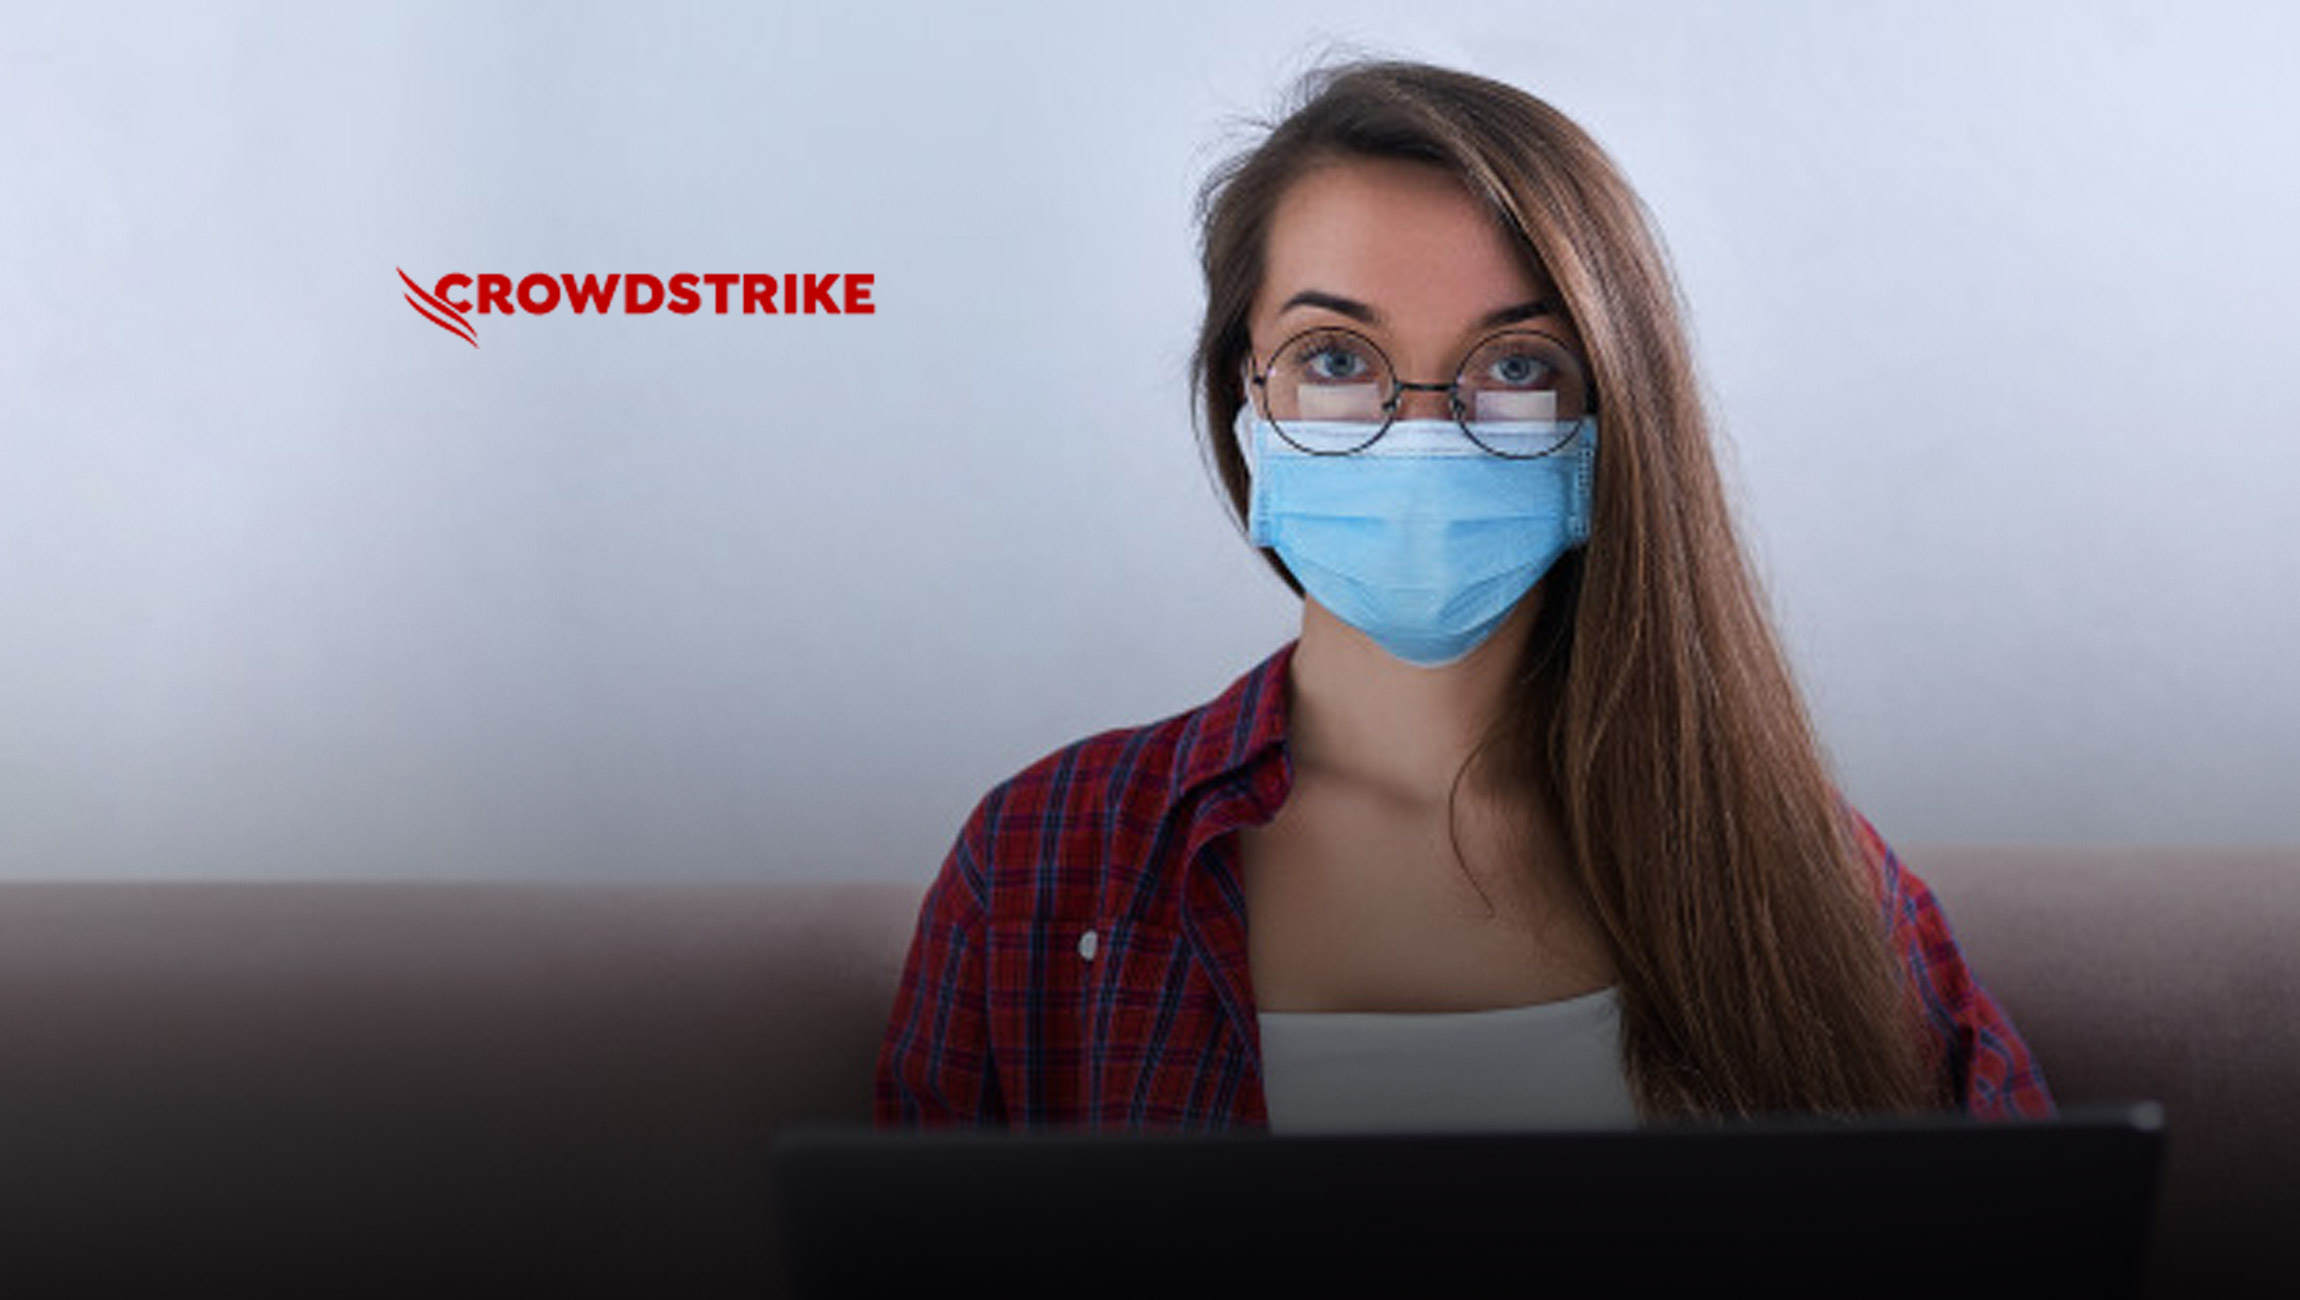 New CrowdStrike Threat Hunting Report Reveals Dramatic Rise in eCrime Activity and Shift in Industries Targeted During Pandemic